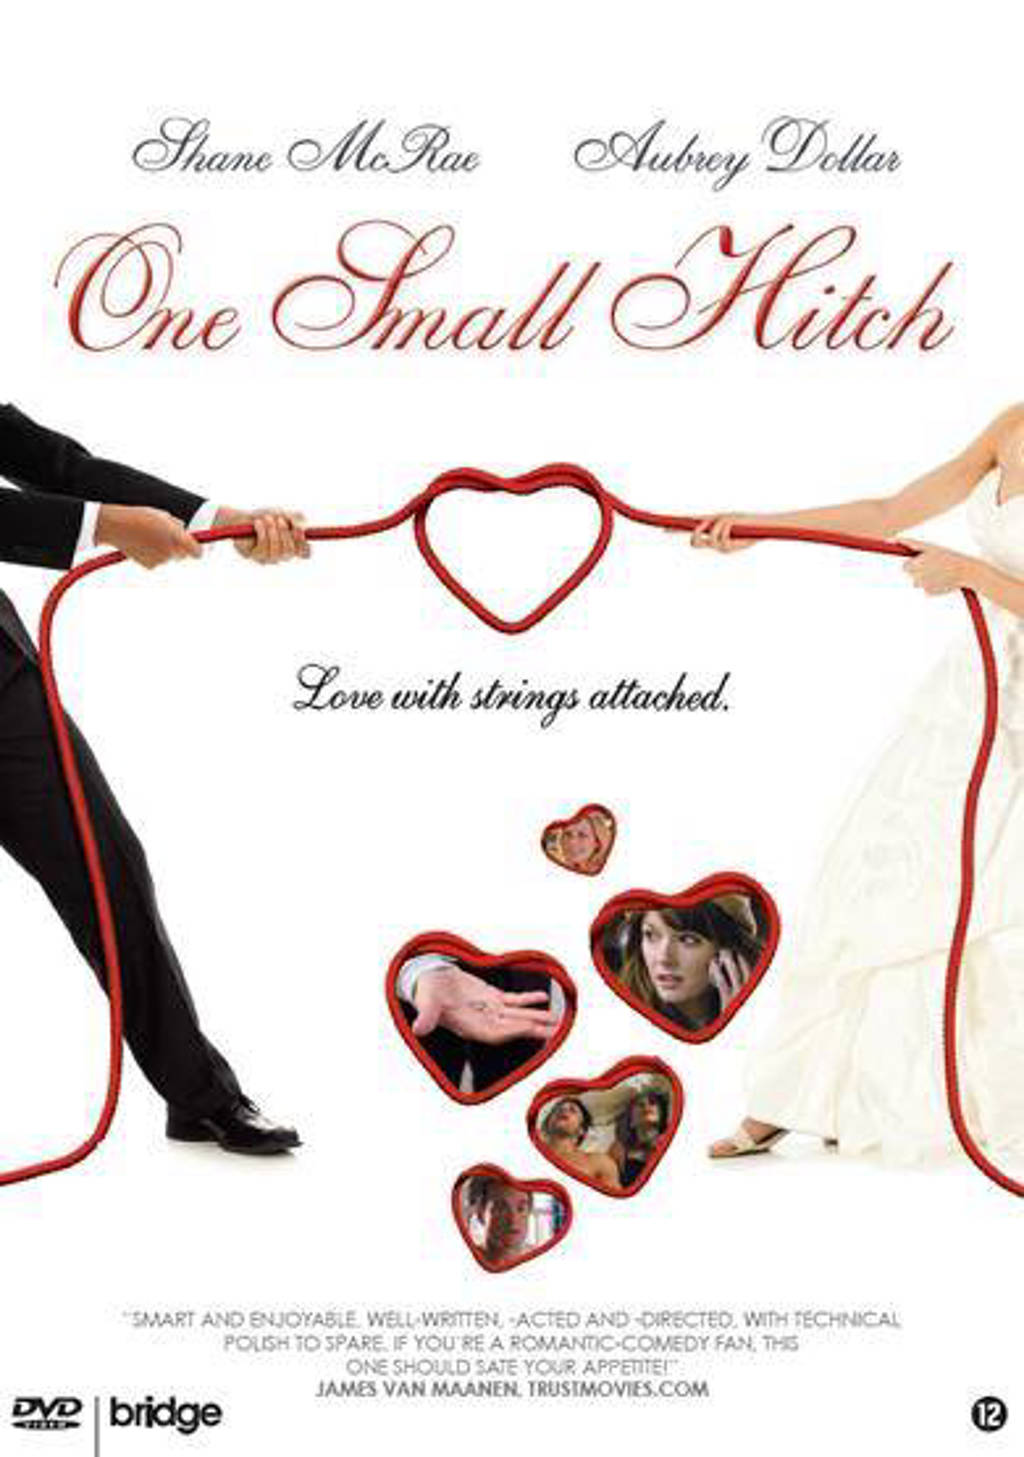 One small hitch (DVD)